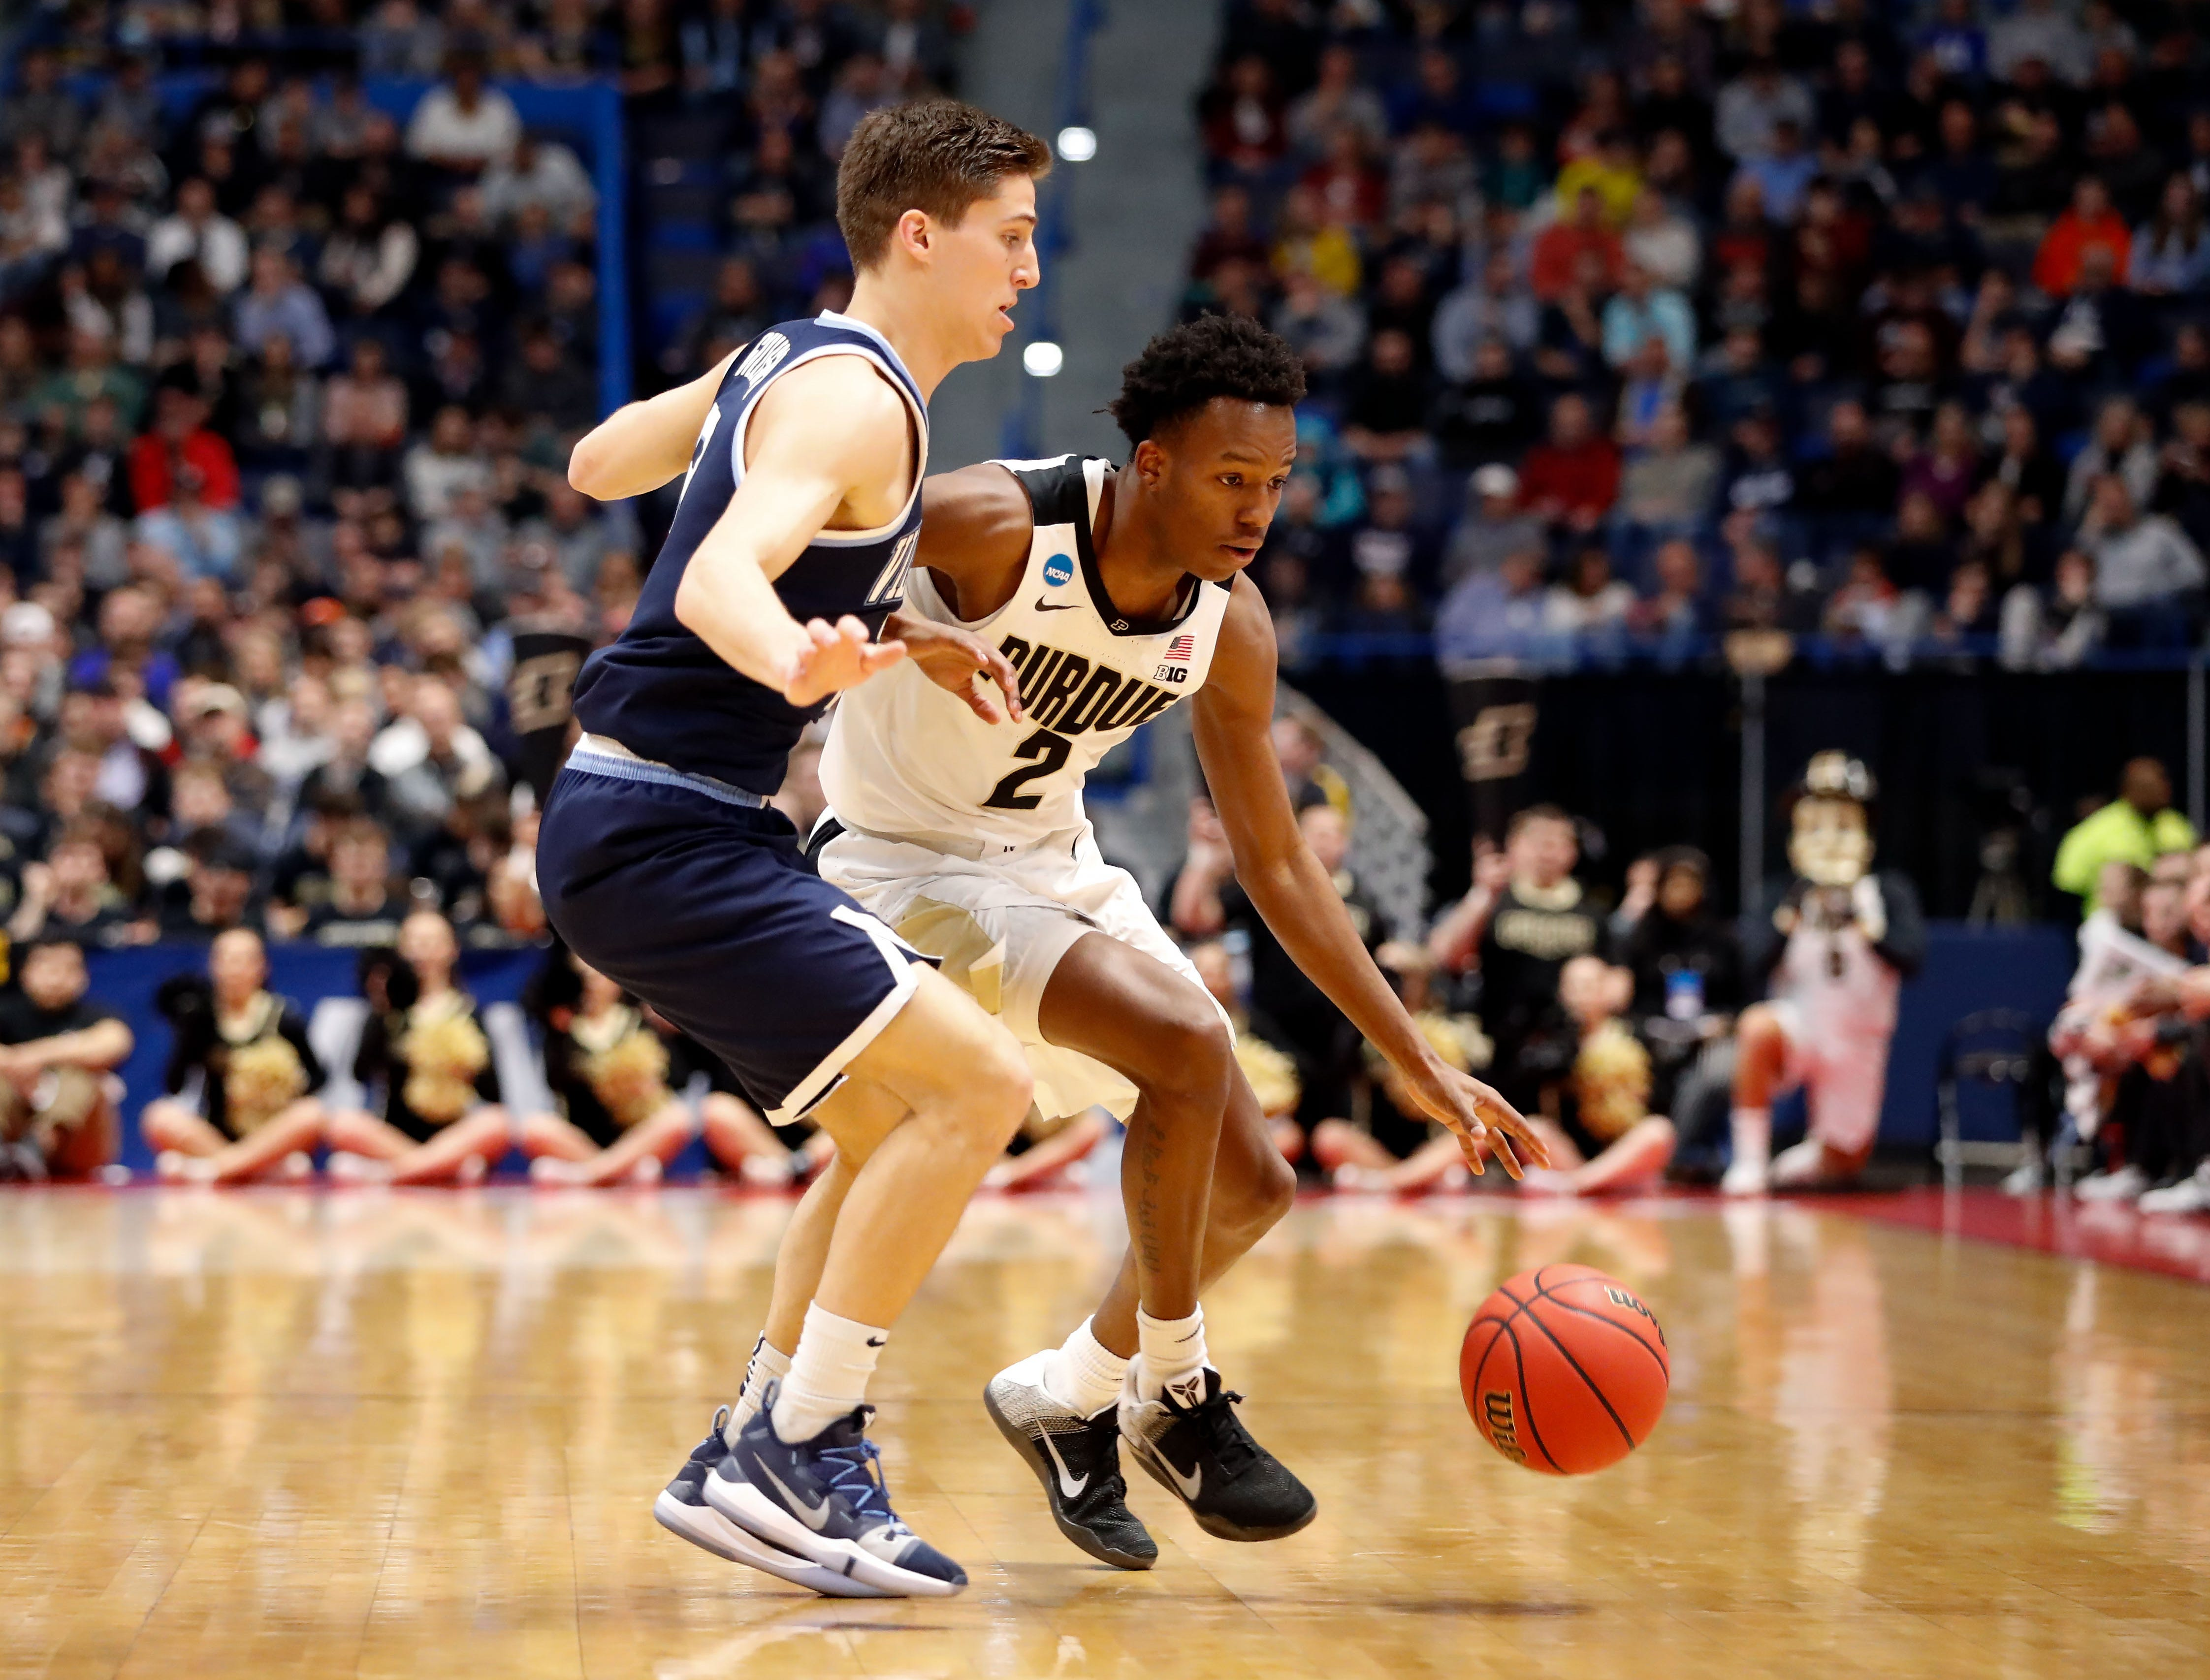 Mar 23, 2019; Hartford, CT, USA; Purdue Boilermakers guard Eric Hunter Jr. (2) controls the ball in front of Villanova Wildcats guard Collin Gillespie (2) during the first half of a game in the second round of the 2019 NCAA Tournament at XL Center. Mandatory Credit: David Butler II-USA TODAY Sports